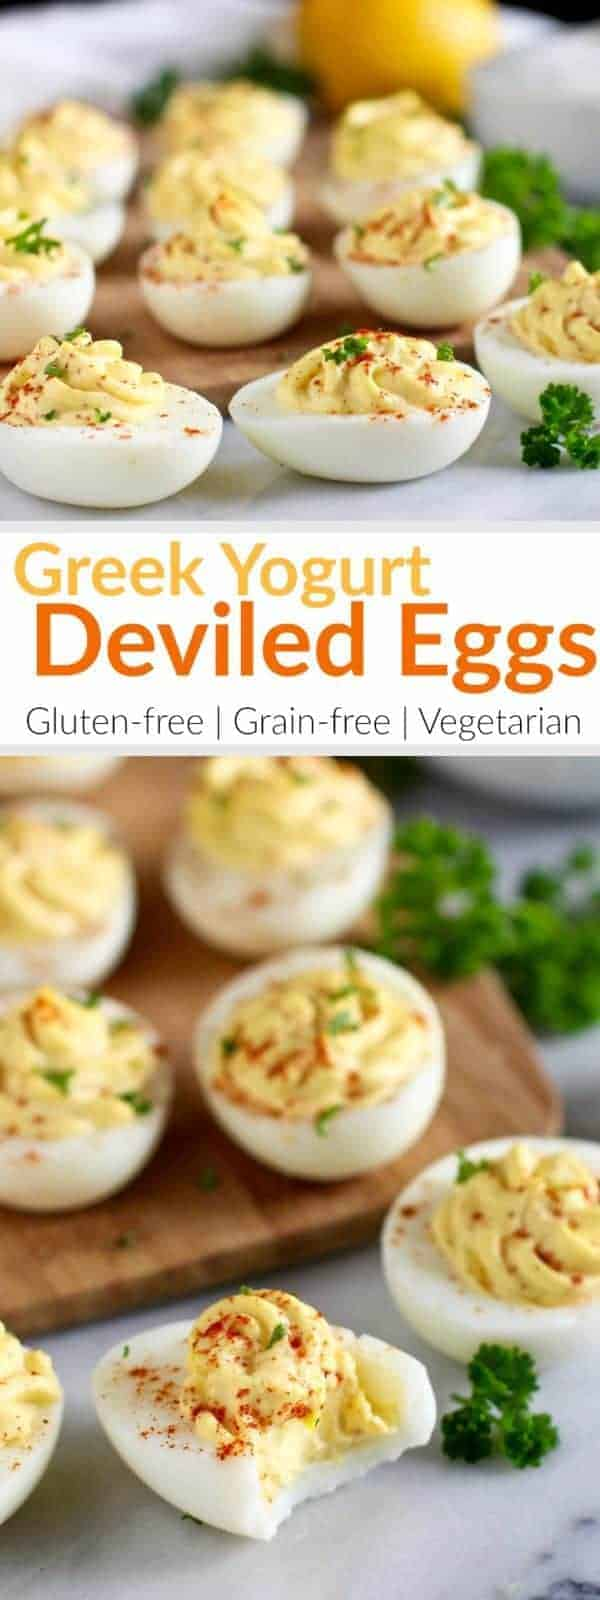 Tangy and thick Greek yogurt takes the place of mayo in our Greek Yogurt Deviled Eggs which consists of just 5 simple ingredients. | Gluten-free | Vegetarian | https://therealfoodrds.com/greek-yogurt-deviled-eggs/